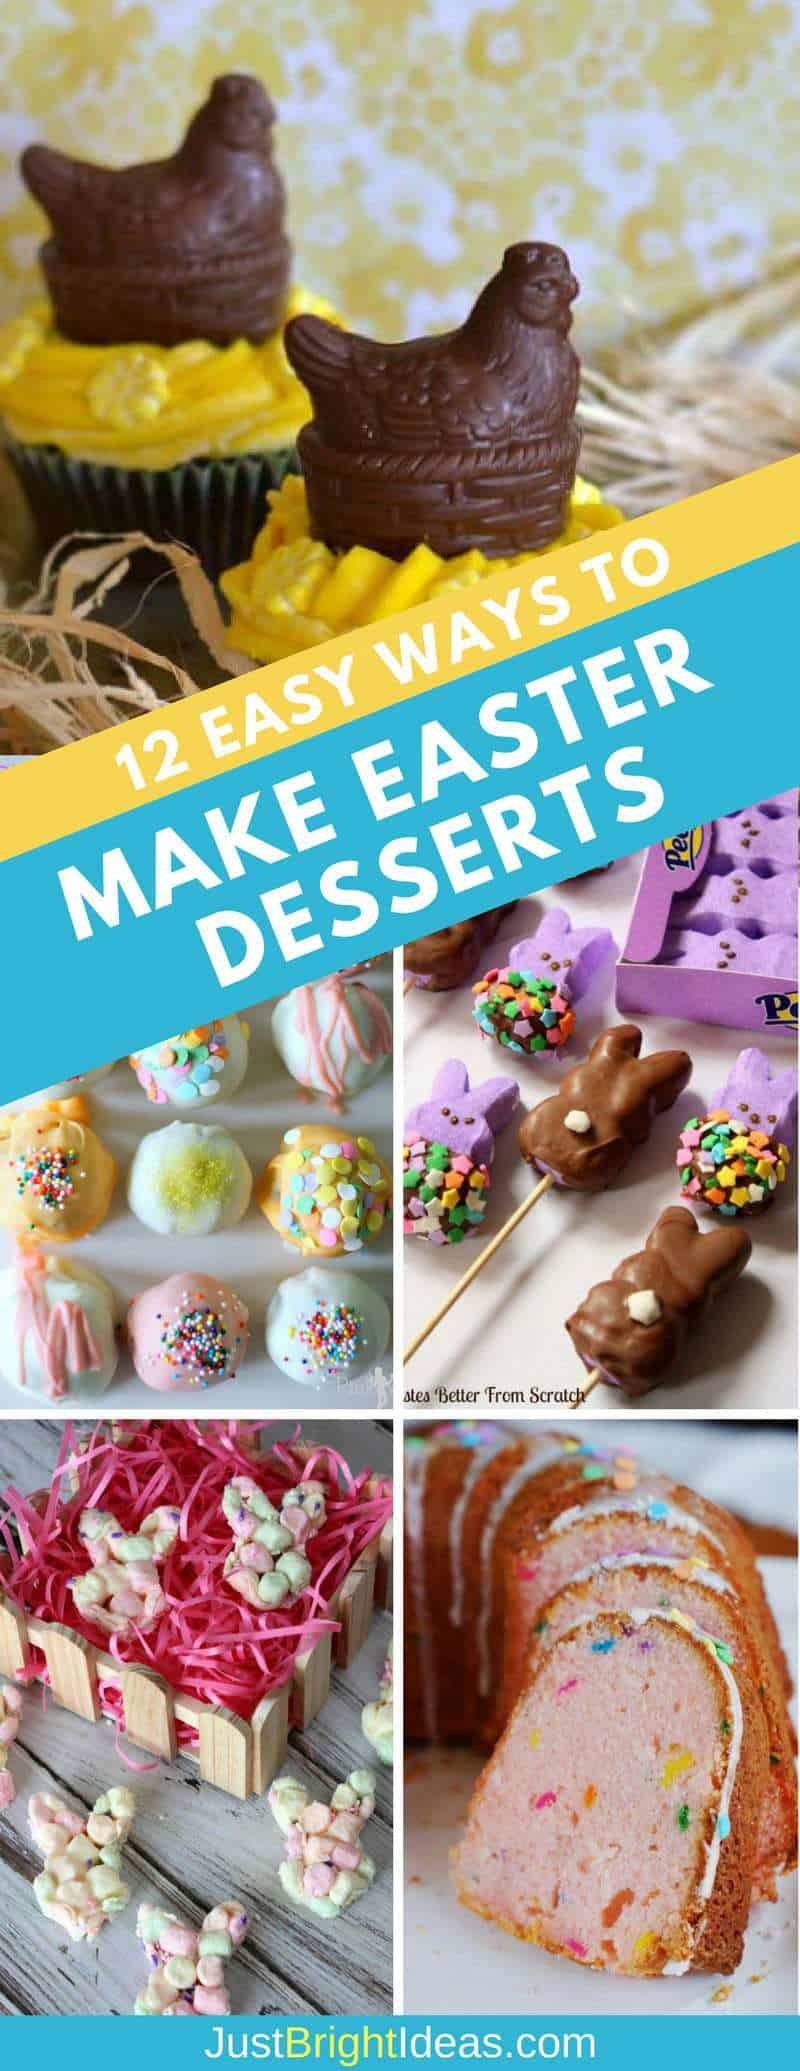 Easy Ways to Make Easter Desserts - Pinterest